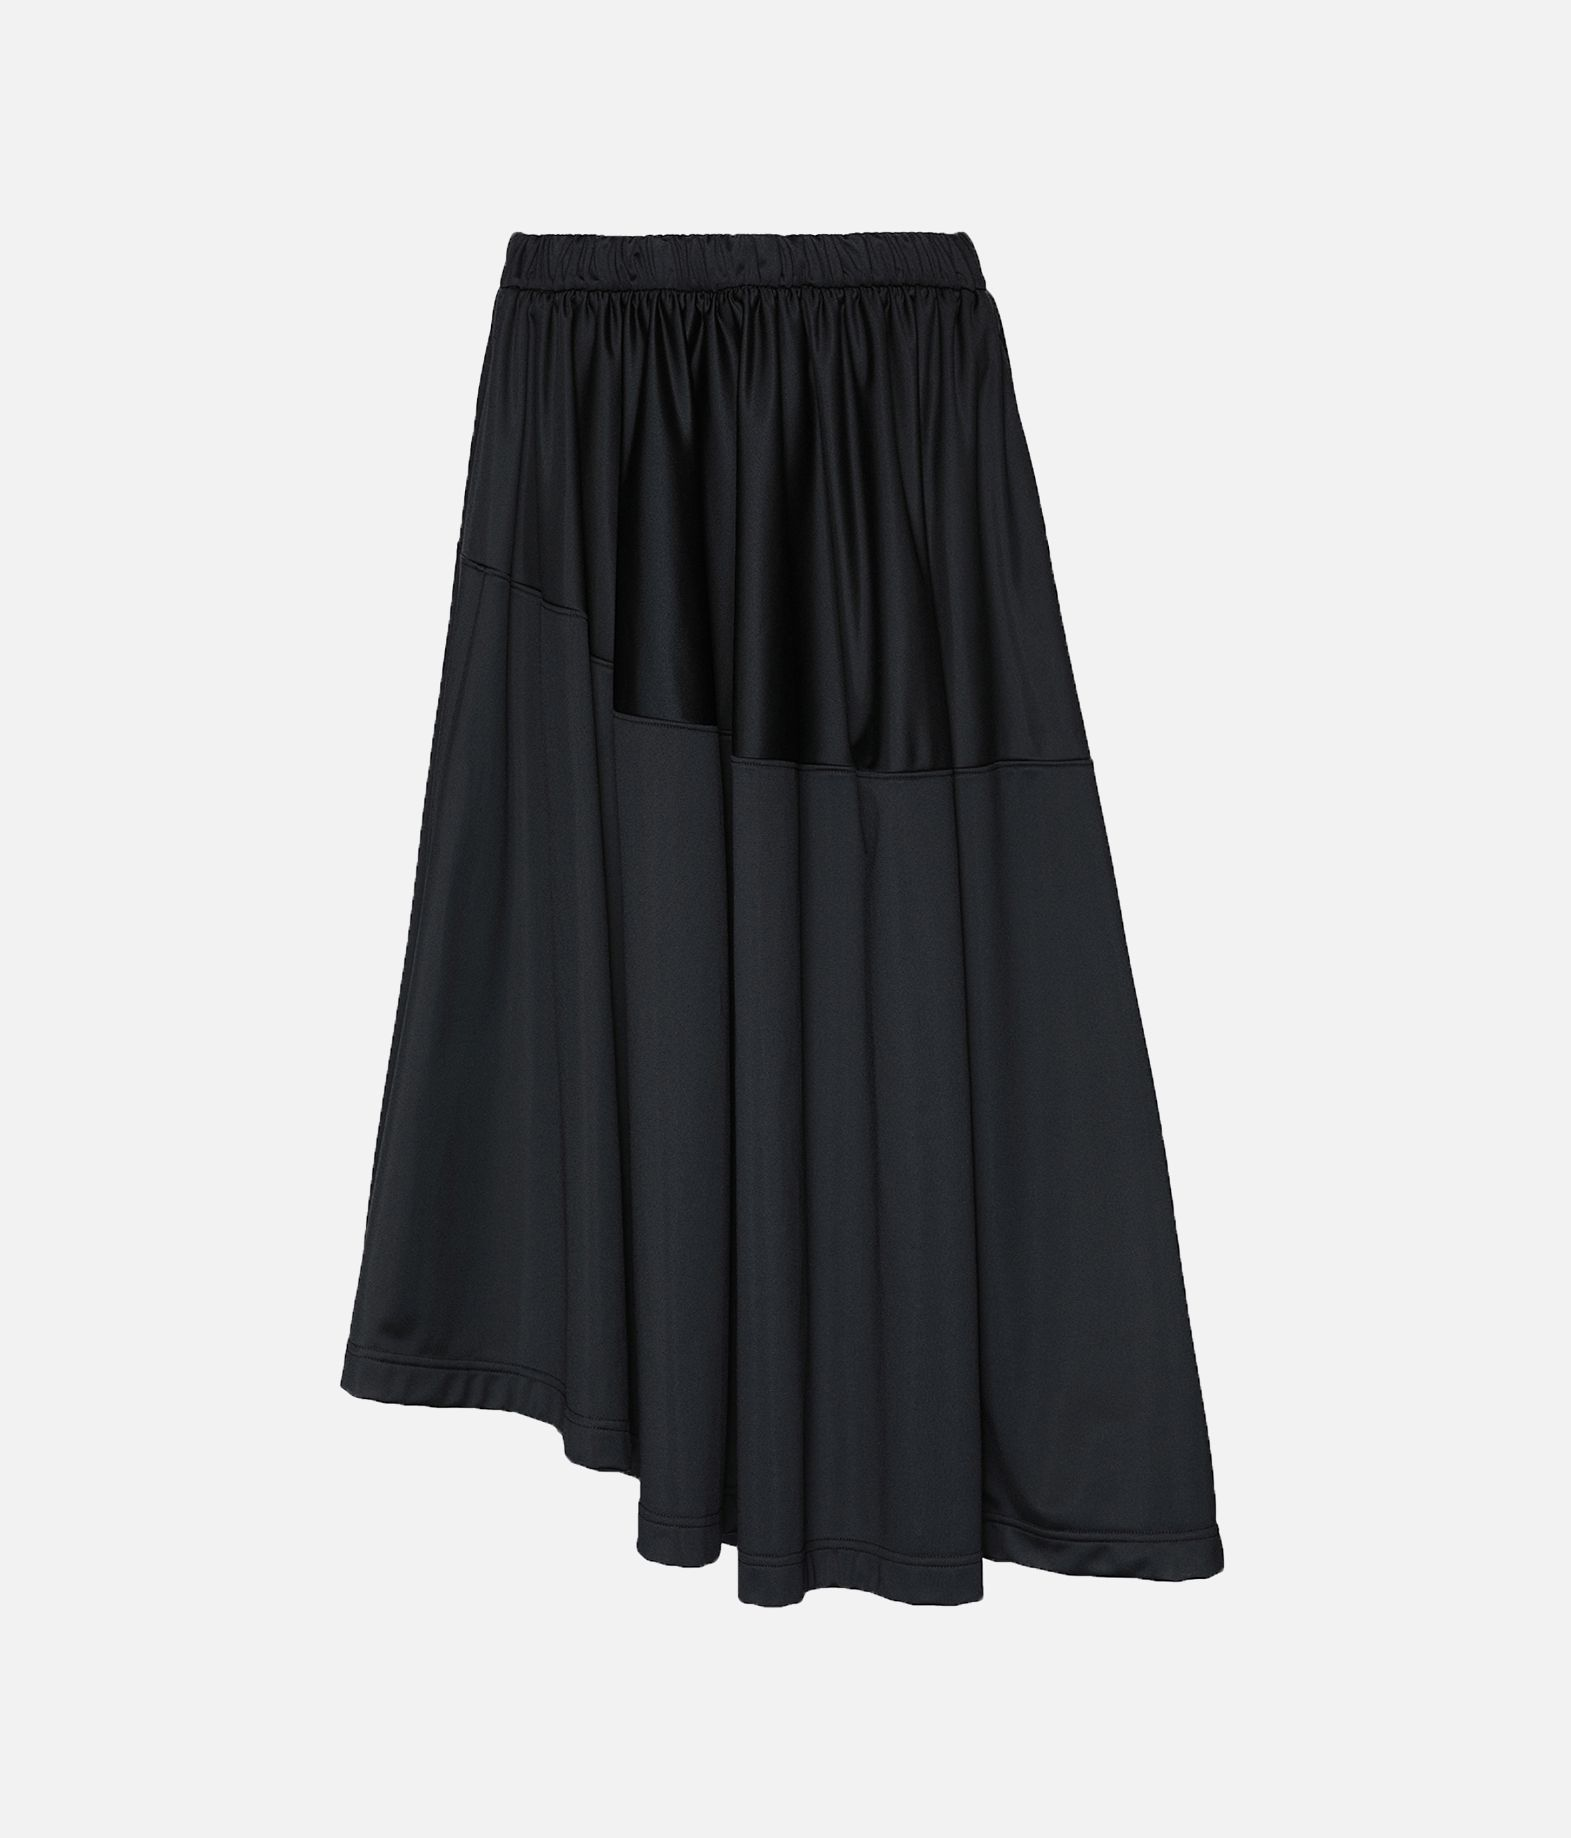 Y-3 Y-3 Firebird Track Skirt 3/4 length skirt Woman f